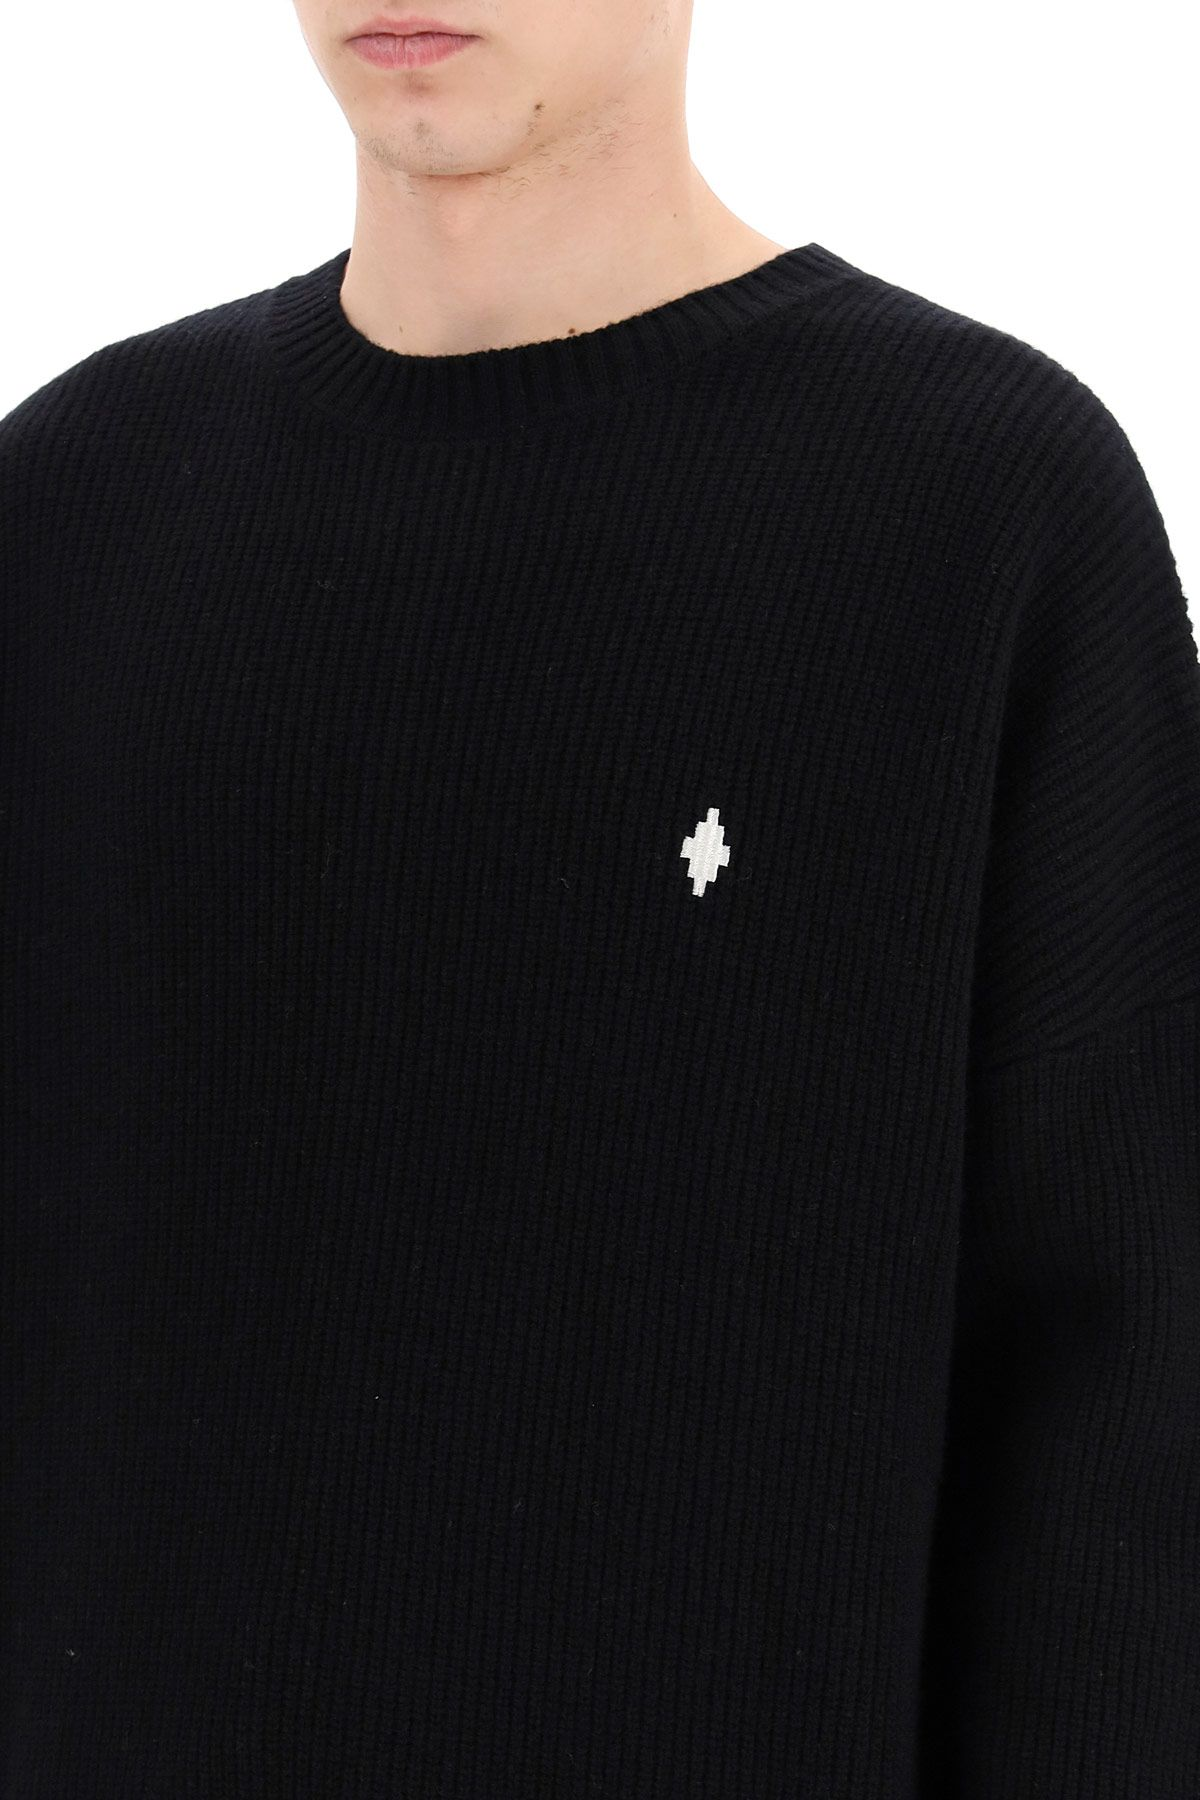 marcelo burlon clothing men sweater with mbcm patch